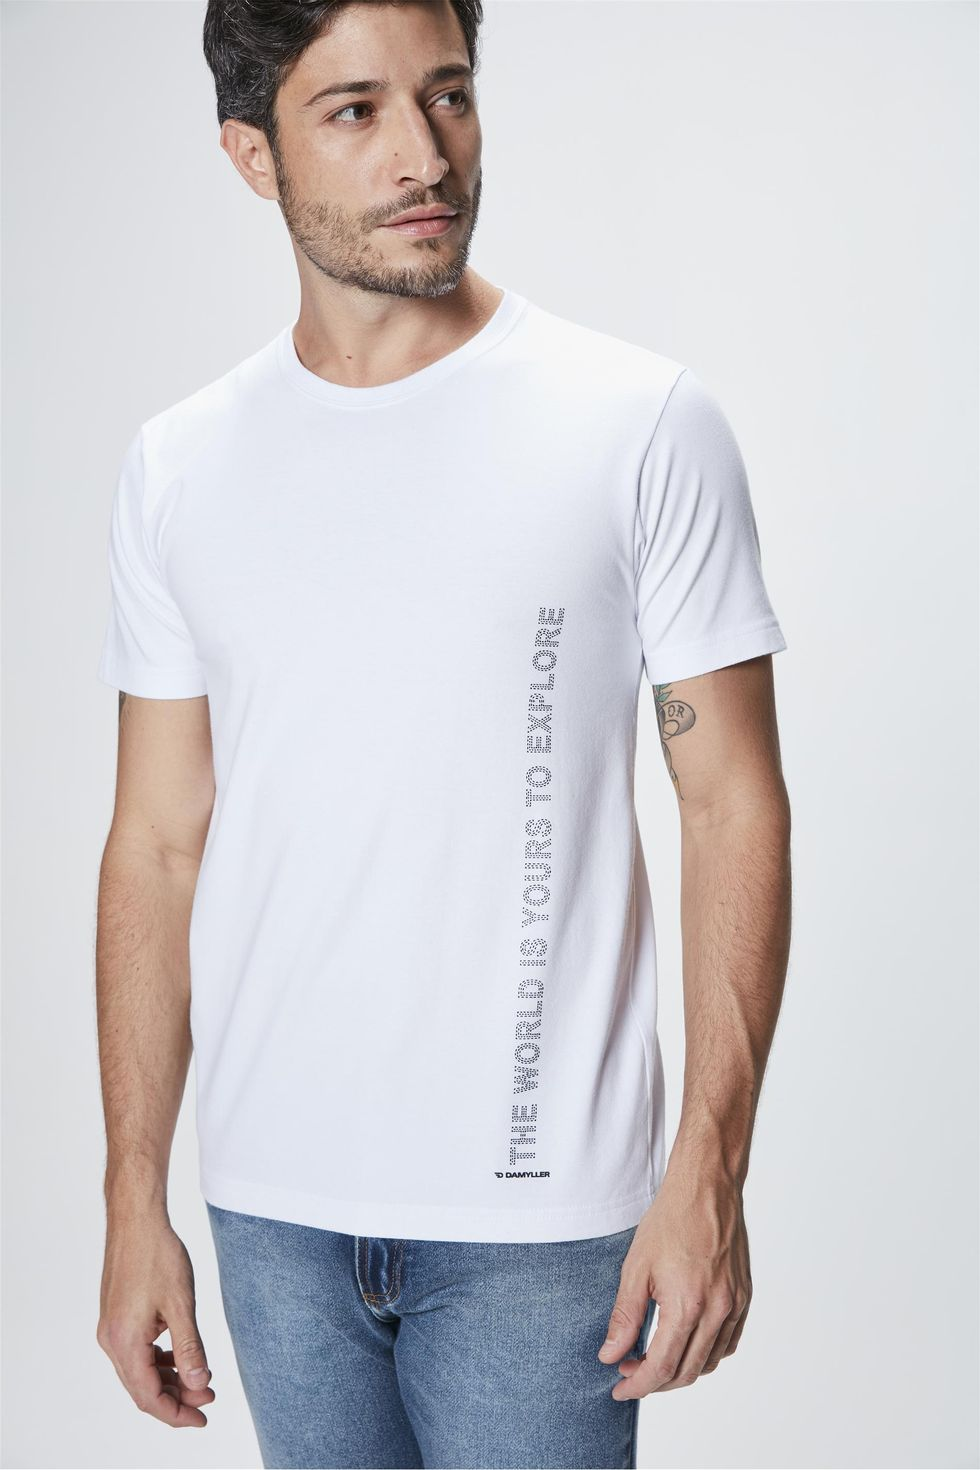 Camiseta-com-Estampa-The-World-is-Yours-Frente--